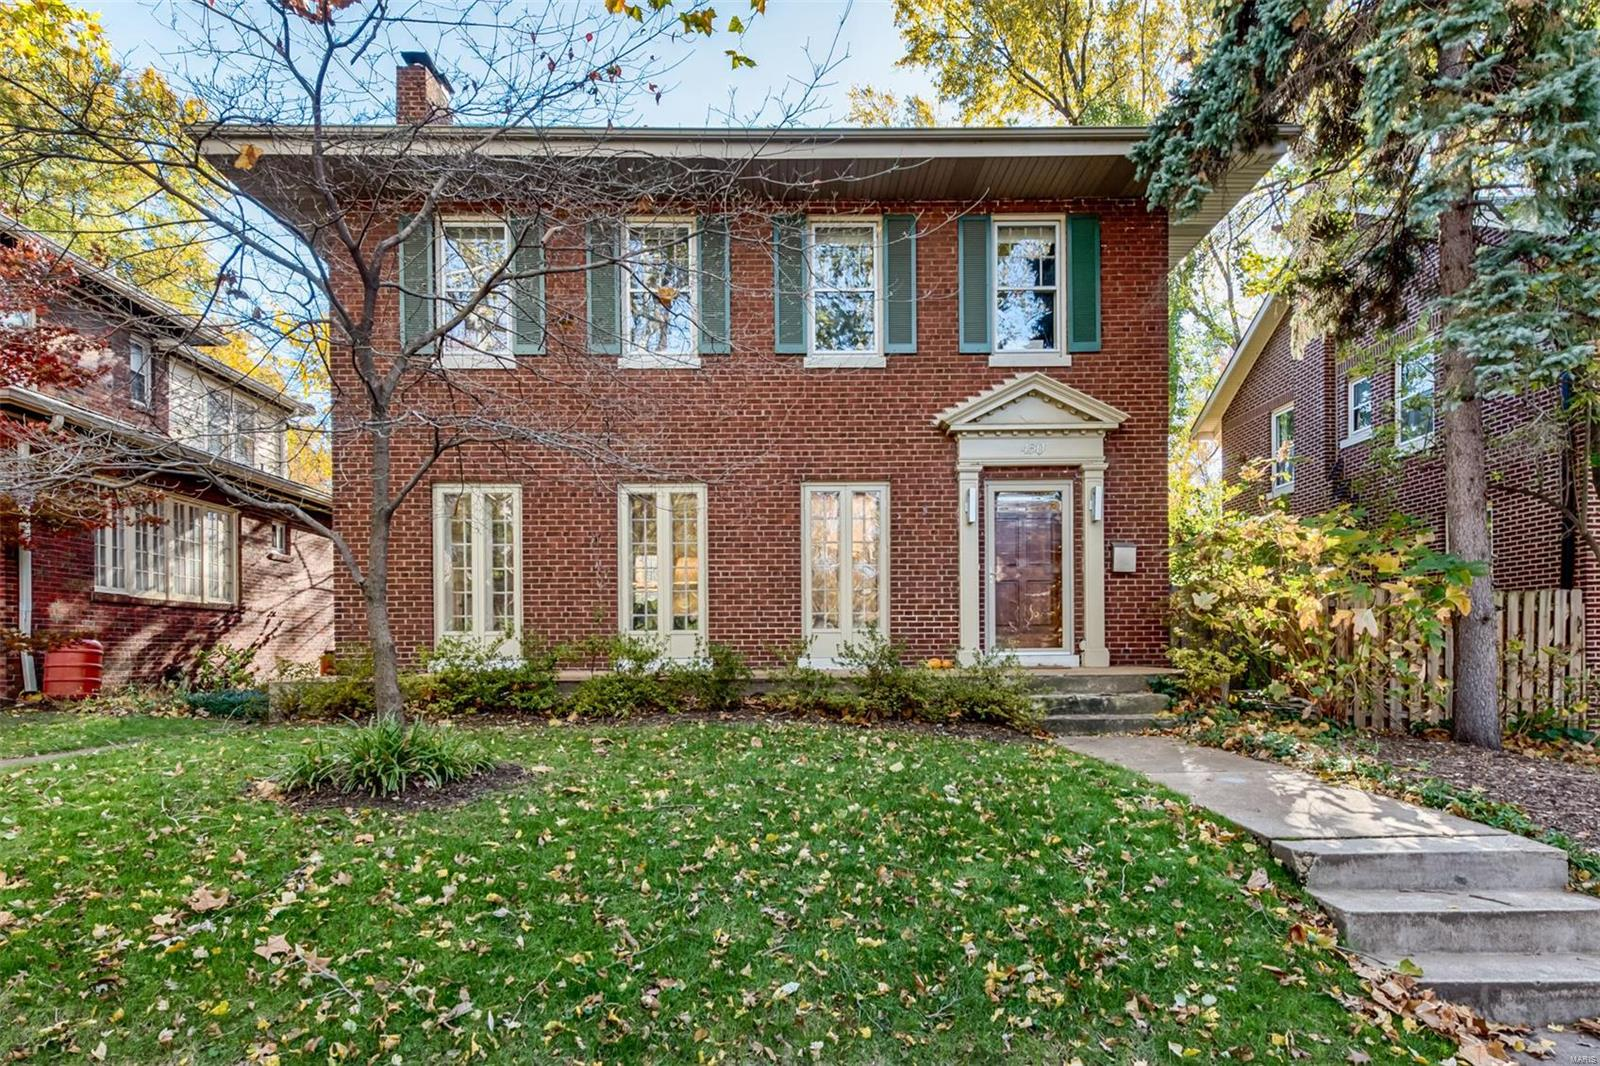 Located in the popular Ames Place neighborhood is this bright and happy home.  Easy access to Washington University, Metrolink and Forest Park via the skywalk.  Also a quick walk to the Delmar Loop with its vast array of restaurants, coffee shops, a movie theater, grocery store and more. The home features a living room with French doors and fireplace. Large, bright dining room.  Eat-in kitchen with custom, ceiling-height wood cabinets and gas stove. Off of the kitchen is a screened porch that overlooks the fenced yard. Upstairs there are 4 bedrooms with the master featuring a custom Ikea closet. There is also a covered porch off of a bedroom. Oak hardwood floors throughout the main and 2nd levels. 2-car garage.